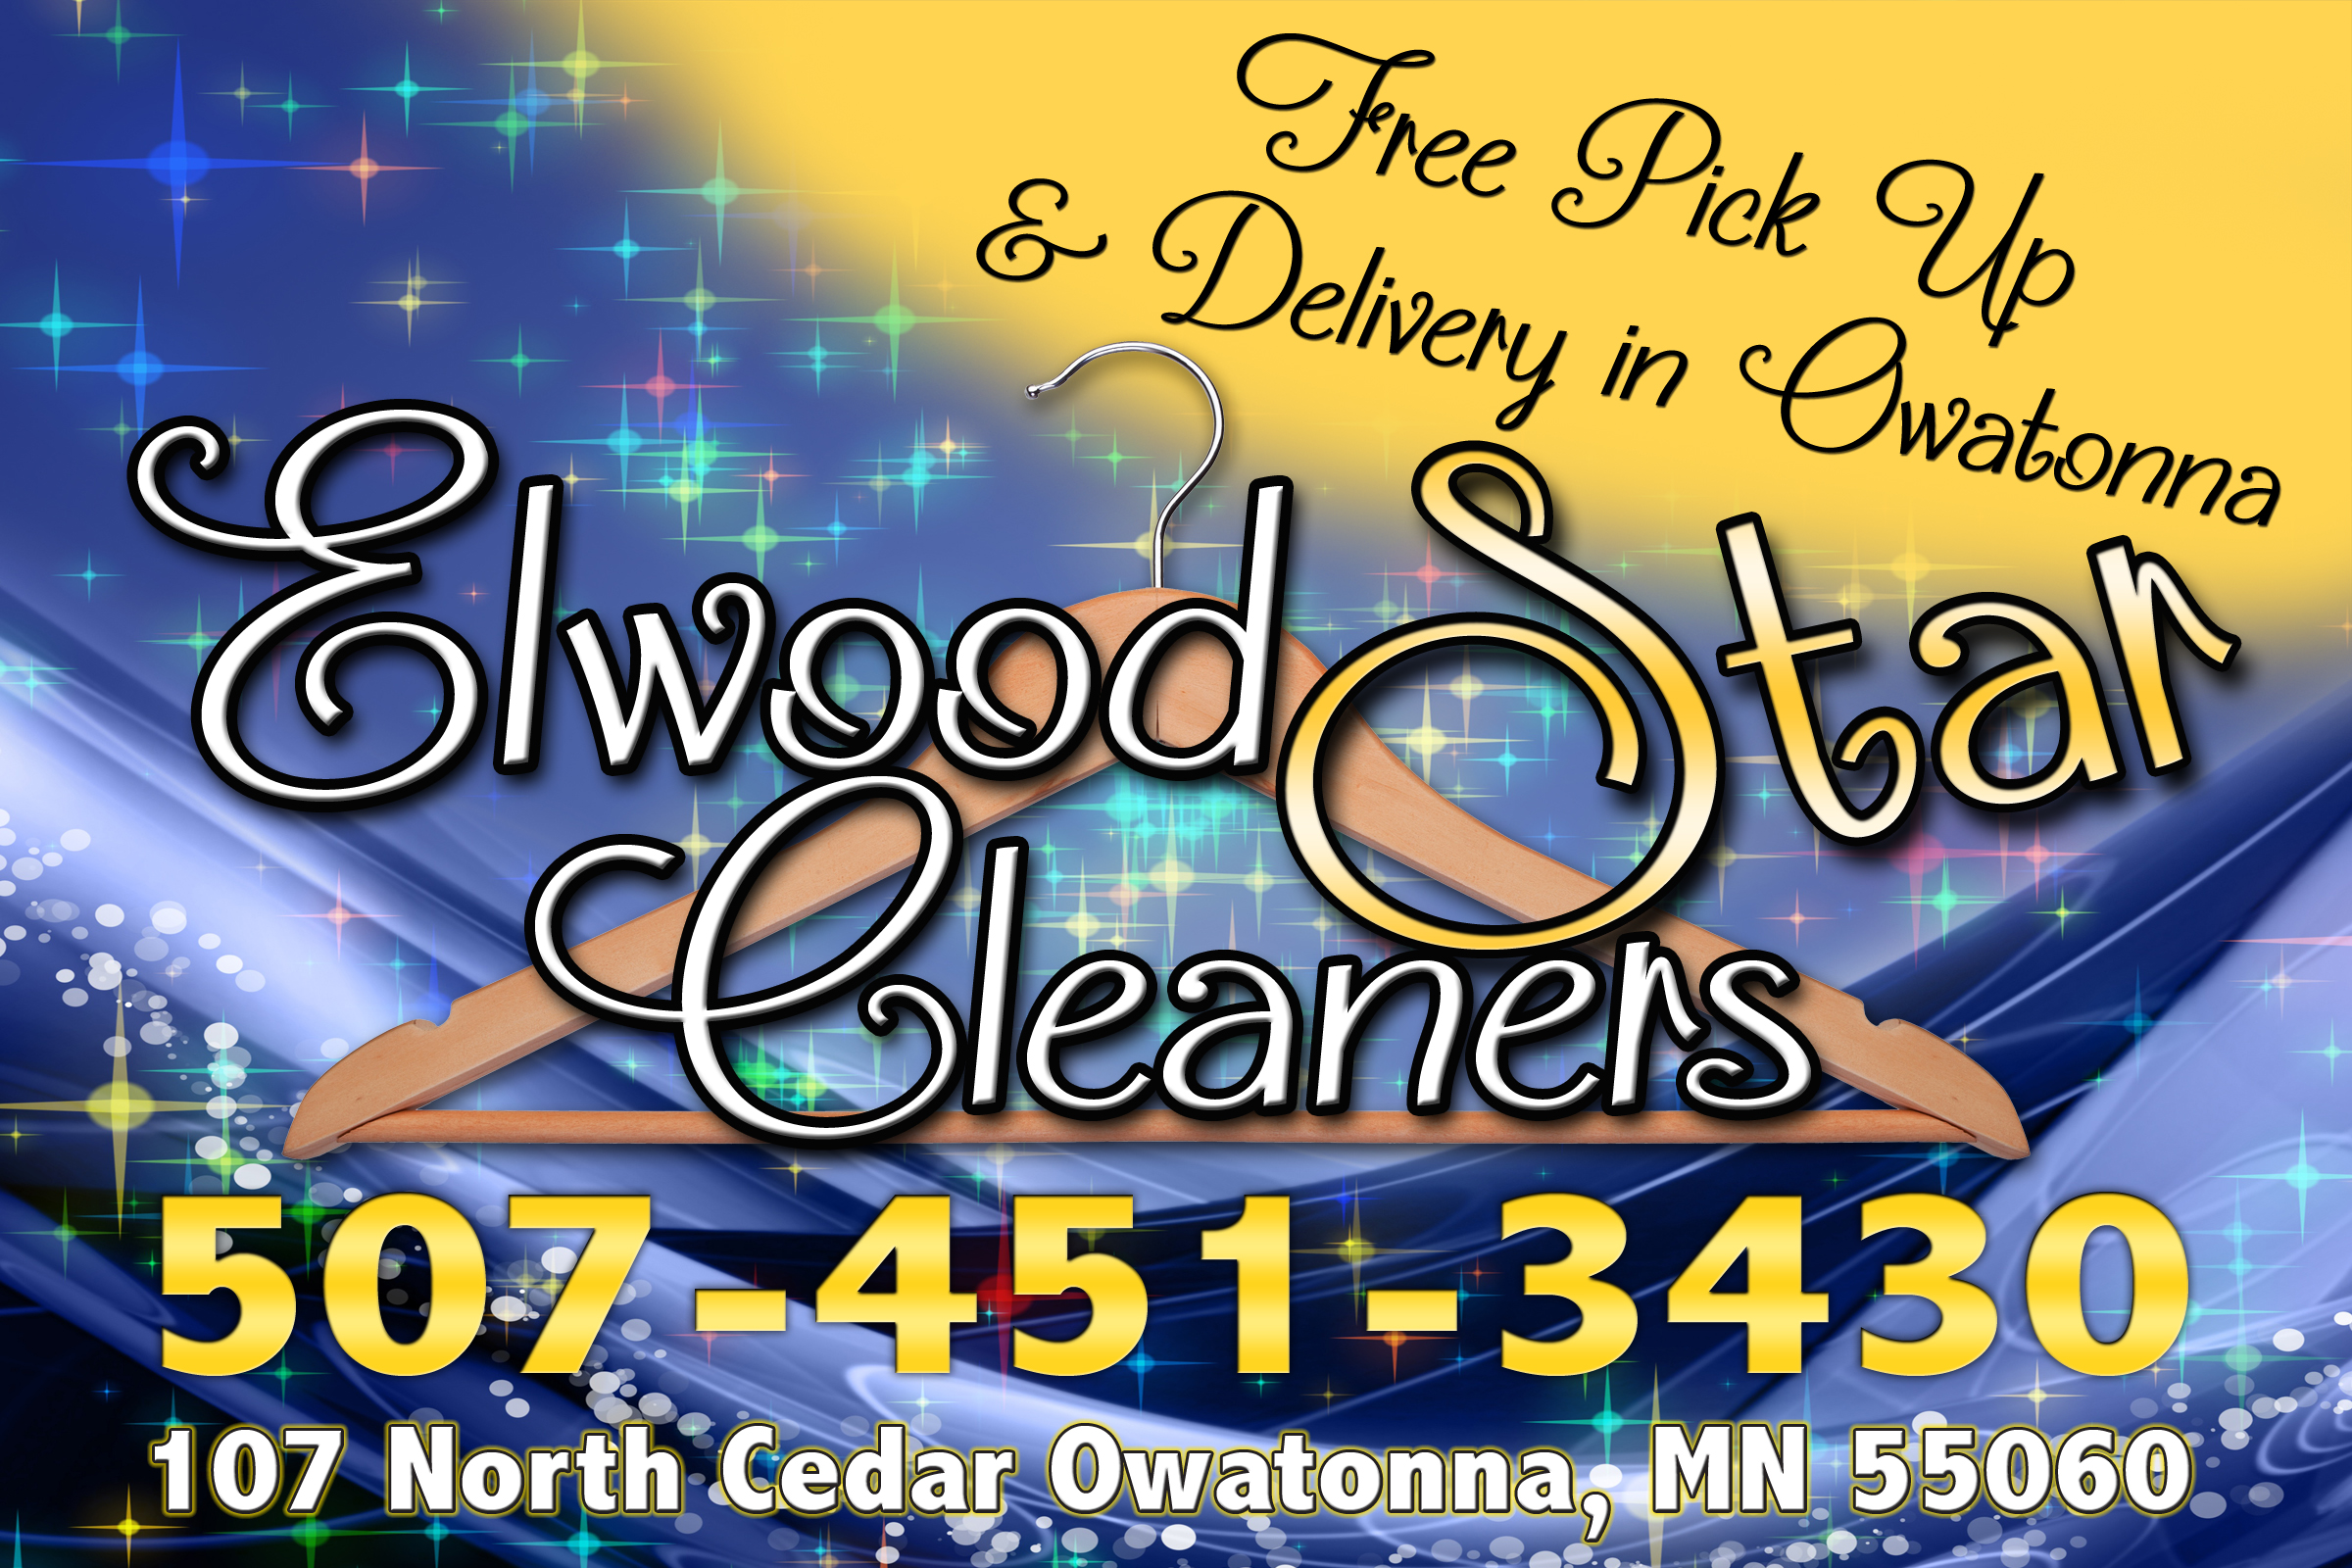 Elwood Star Cleaners